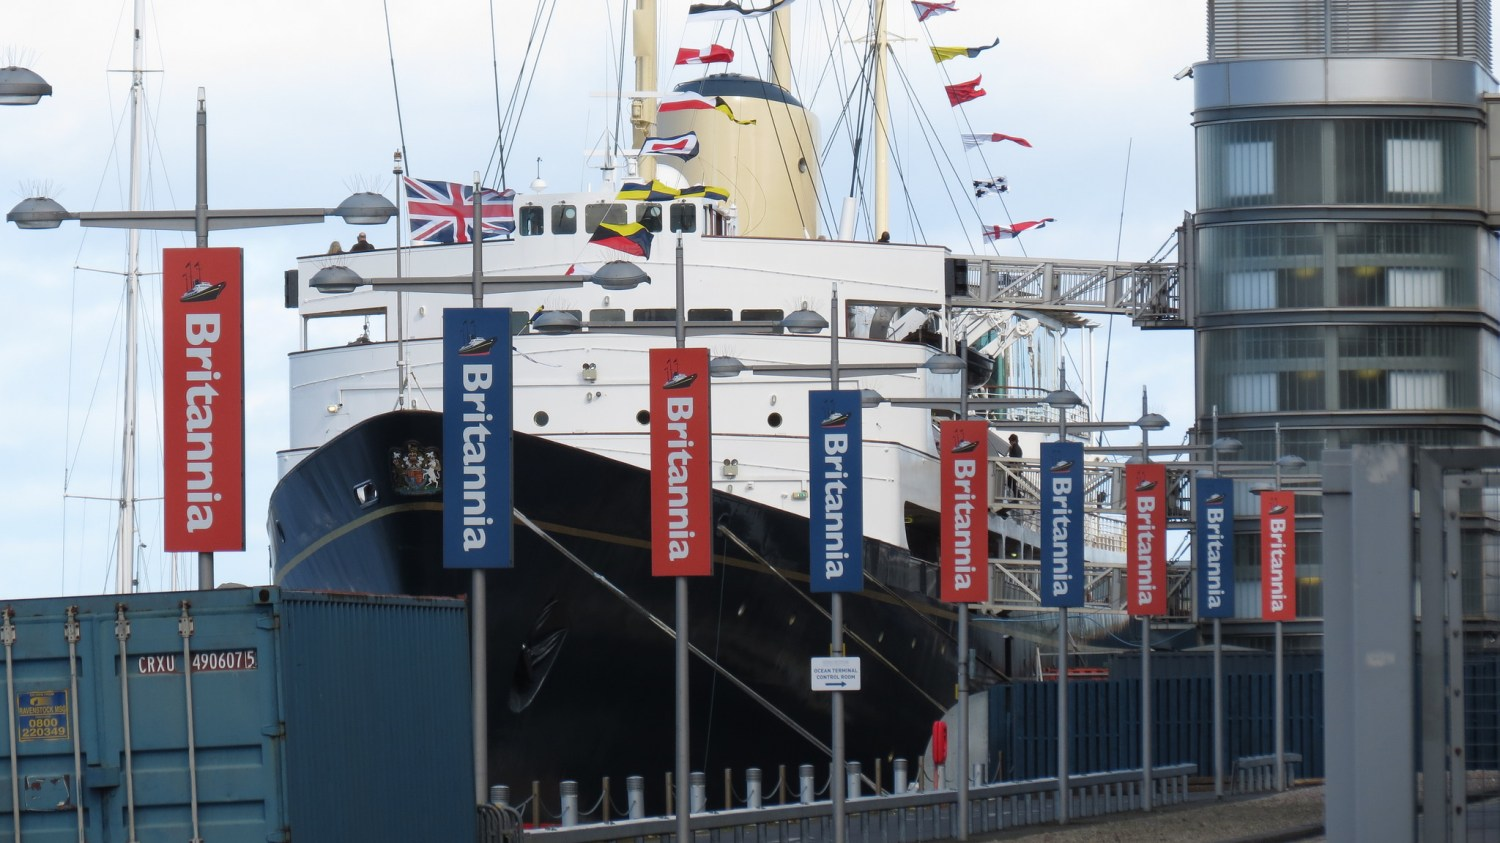 The Royal Yacht Britannia, which was decomissioned in 1997 (Mark Carey, Flickr)